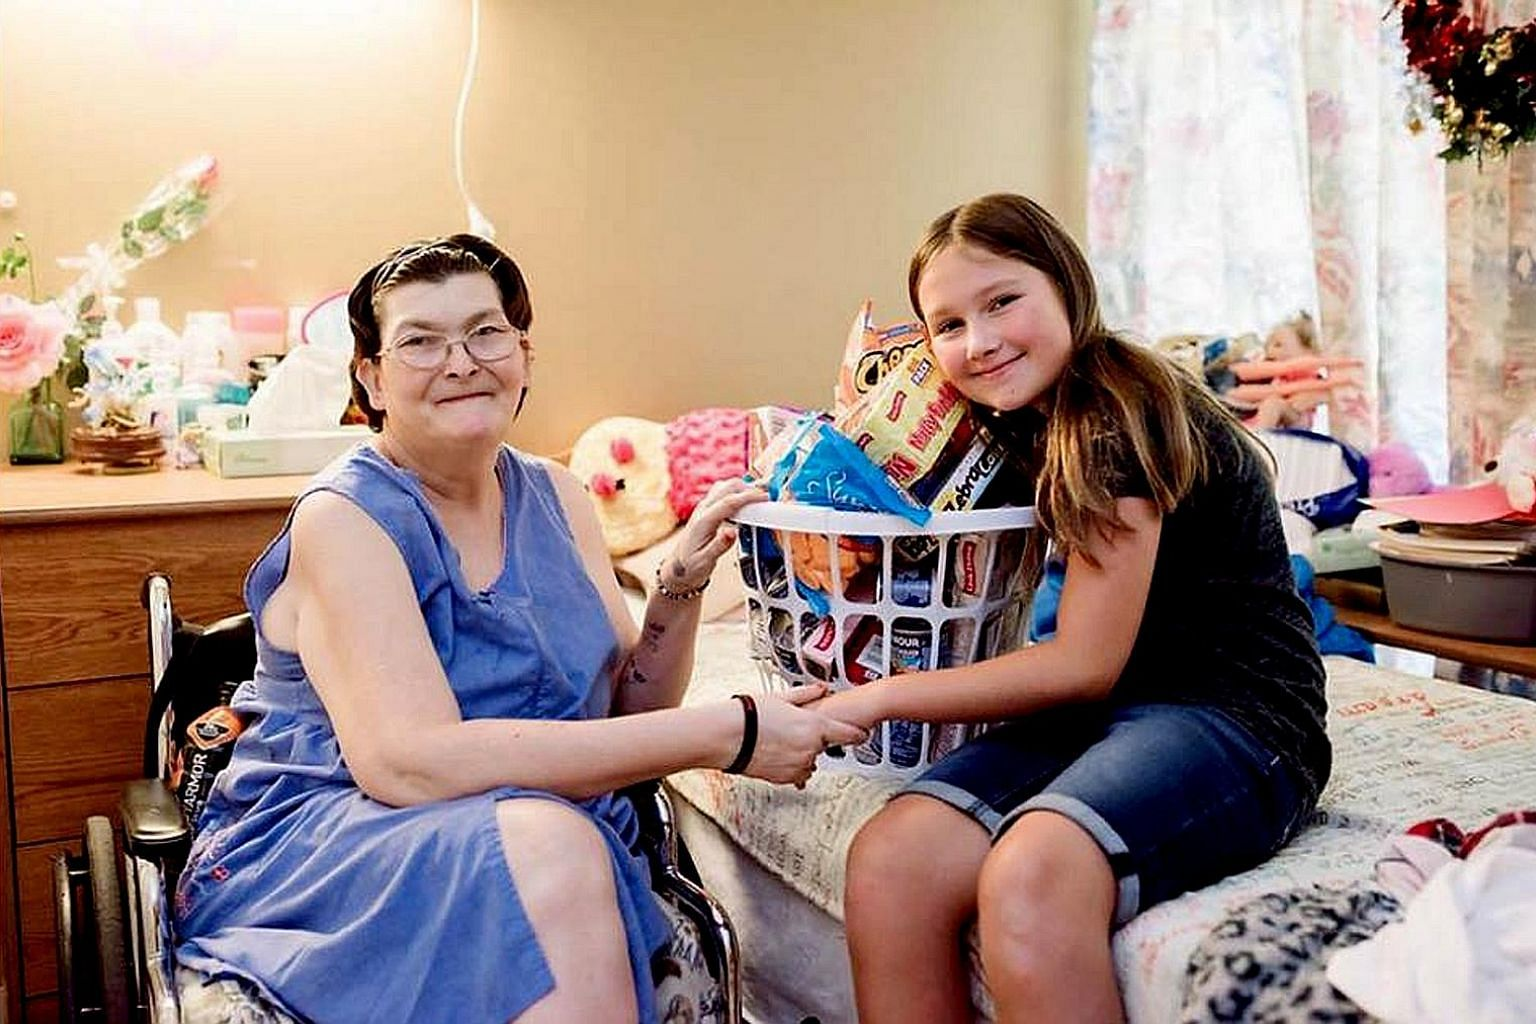 """Ruby Kate Chitsey of Arkansas in the US started a project and Facebook page called """"Three Wishes for Ruby's Residents"""" to do simple things to bring joy to nursing home residents. Over the last two months, she has raised over US$72,000 (S$97,000) to p"""